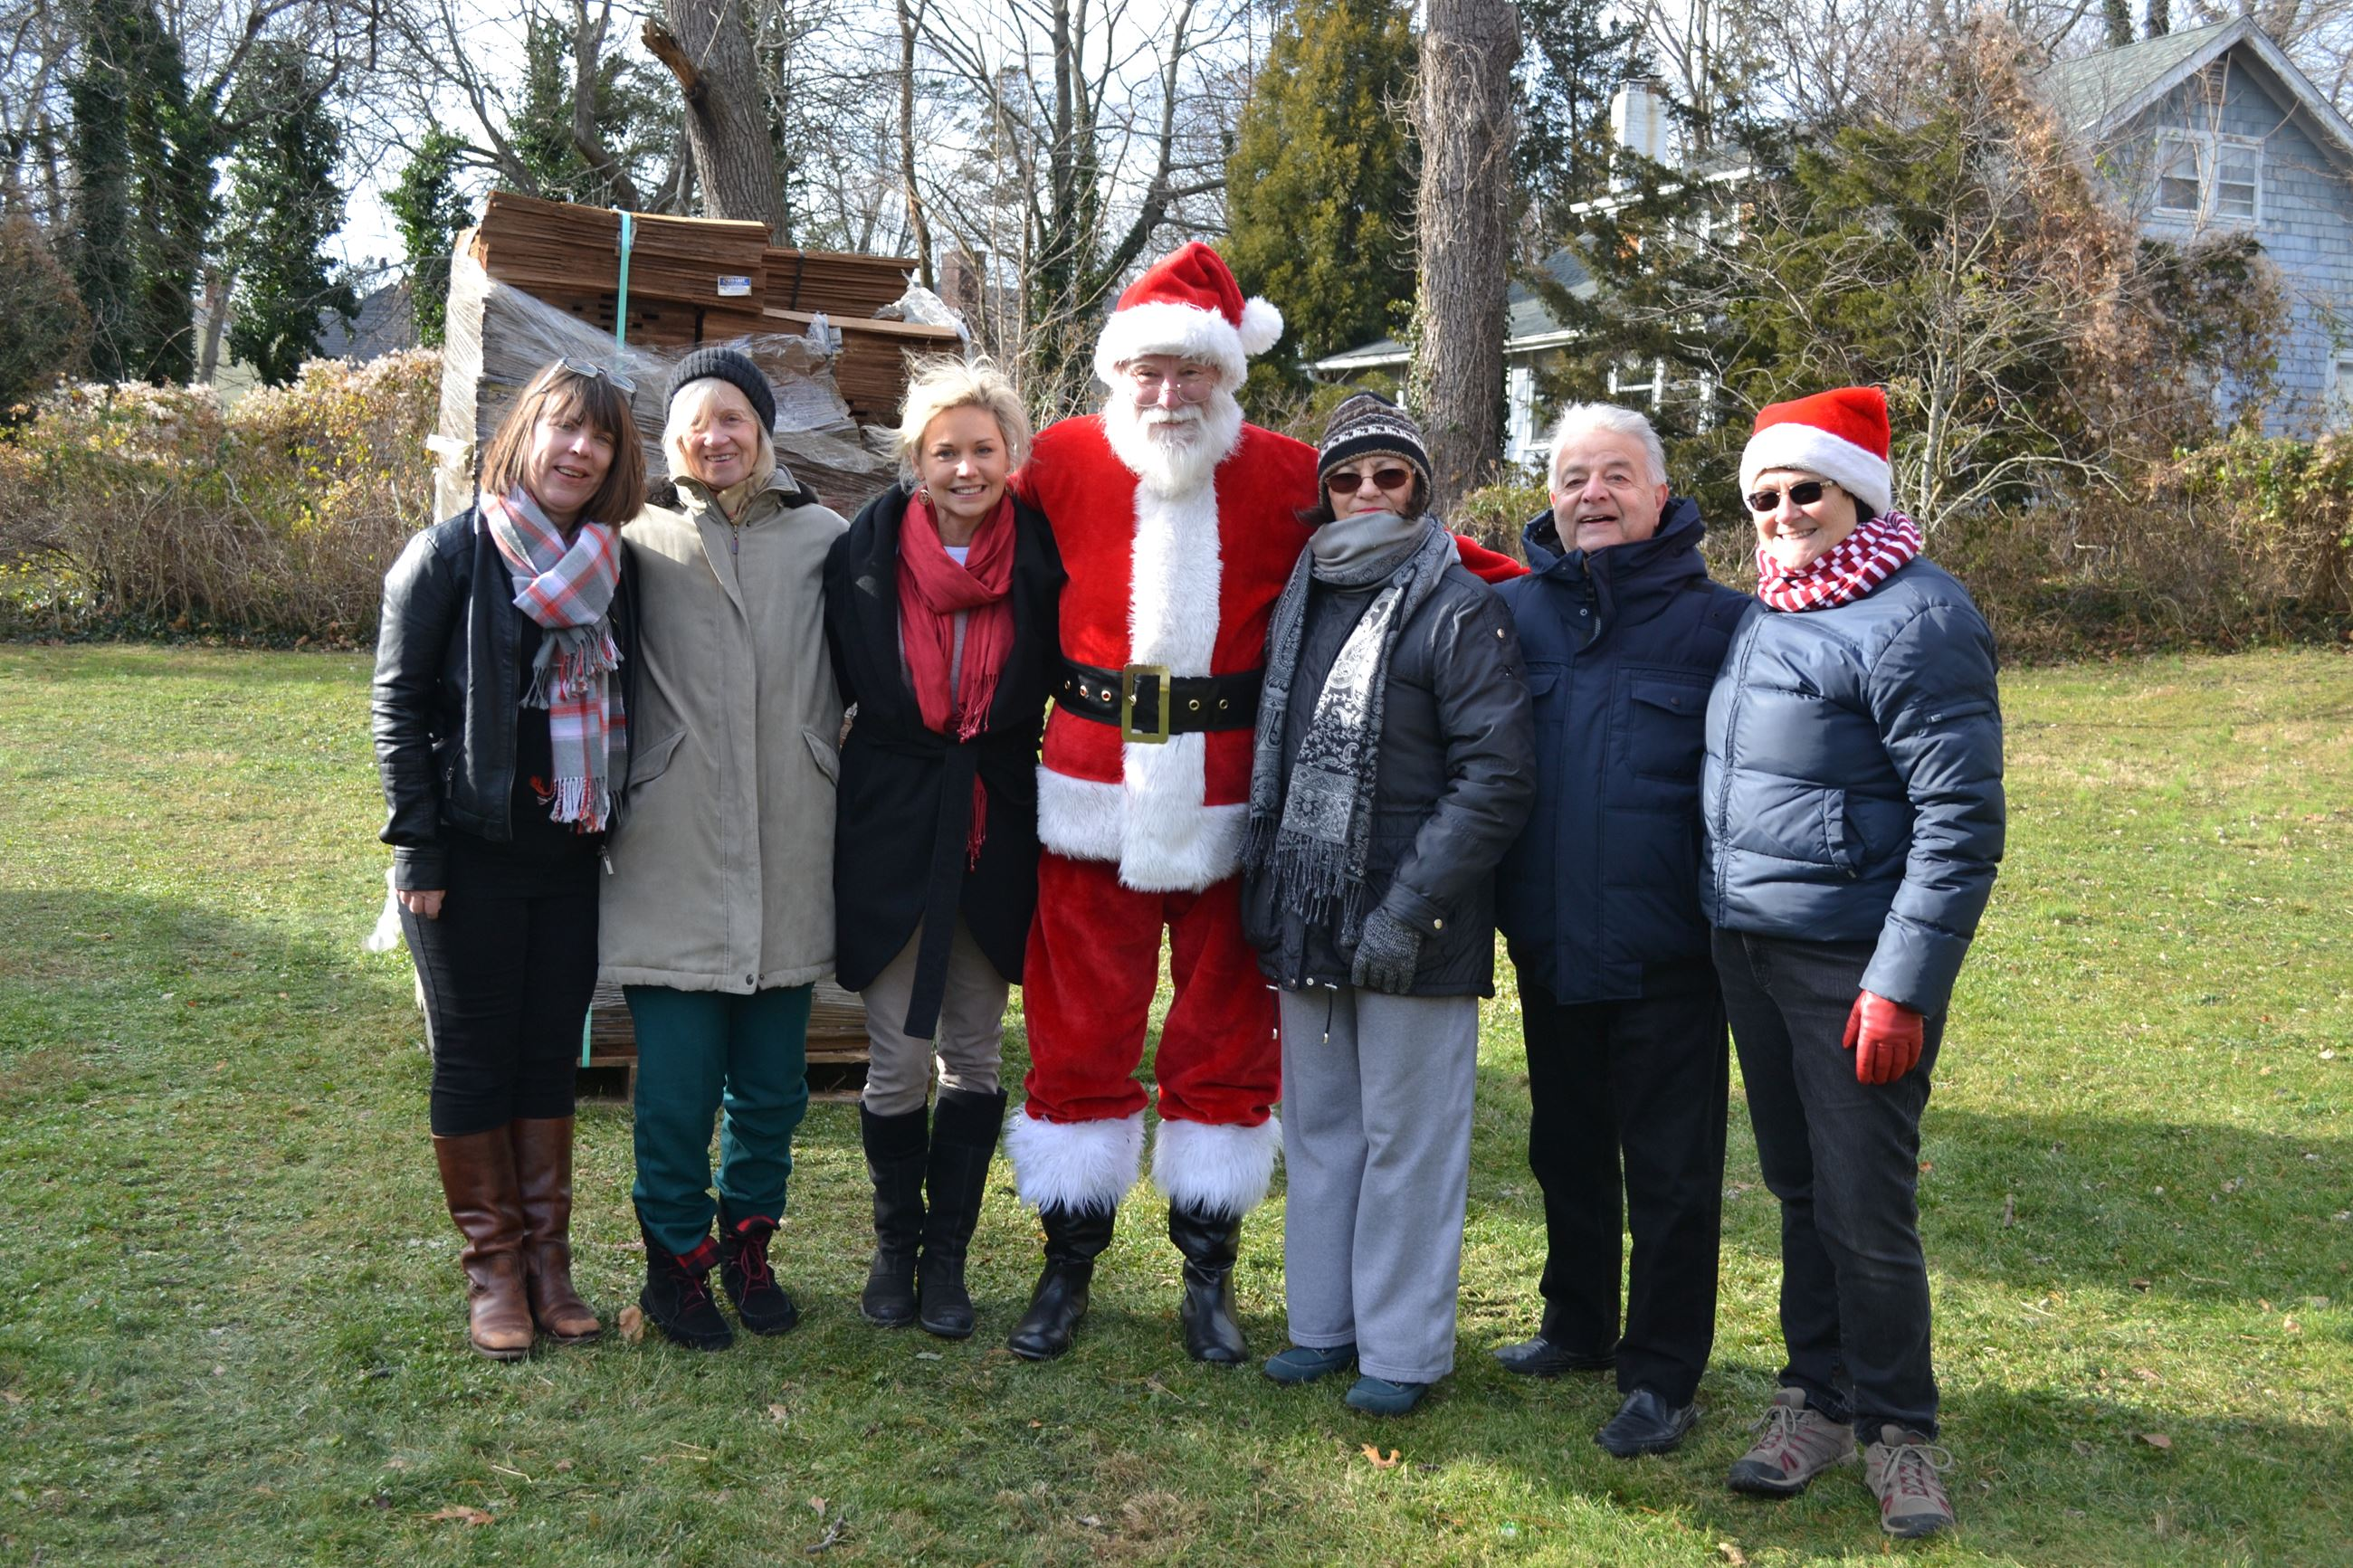 Legislator Anker with Santa and members of the historical society.